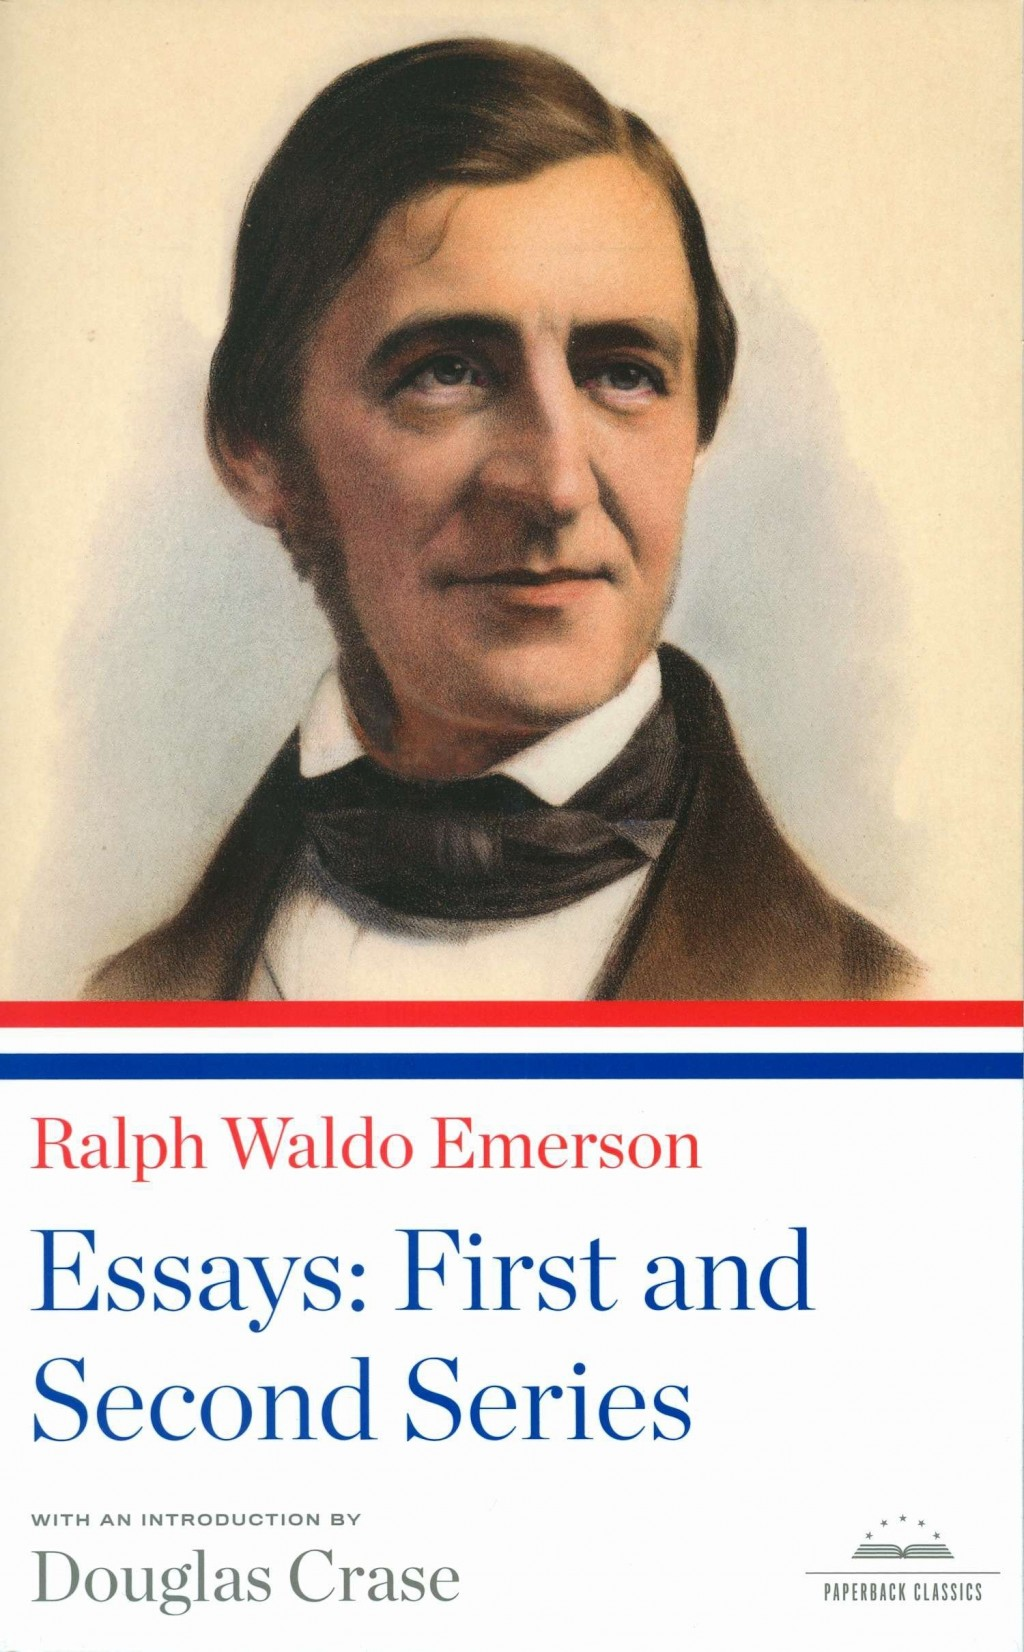 013 81bbtjzup6l Essay Example Ralph Waldo Emerson Unusual Essays Nature And Selected By Pdf Download First Second Series Large